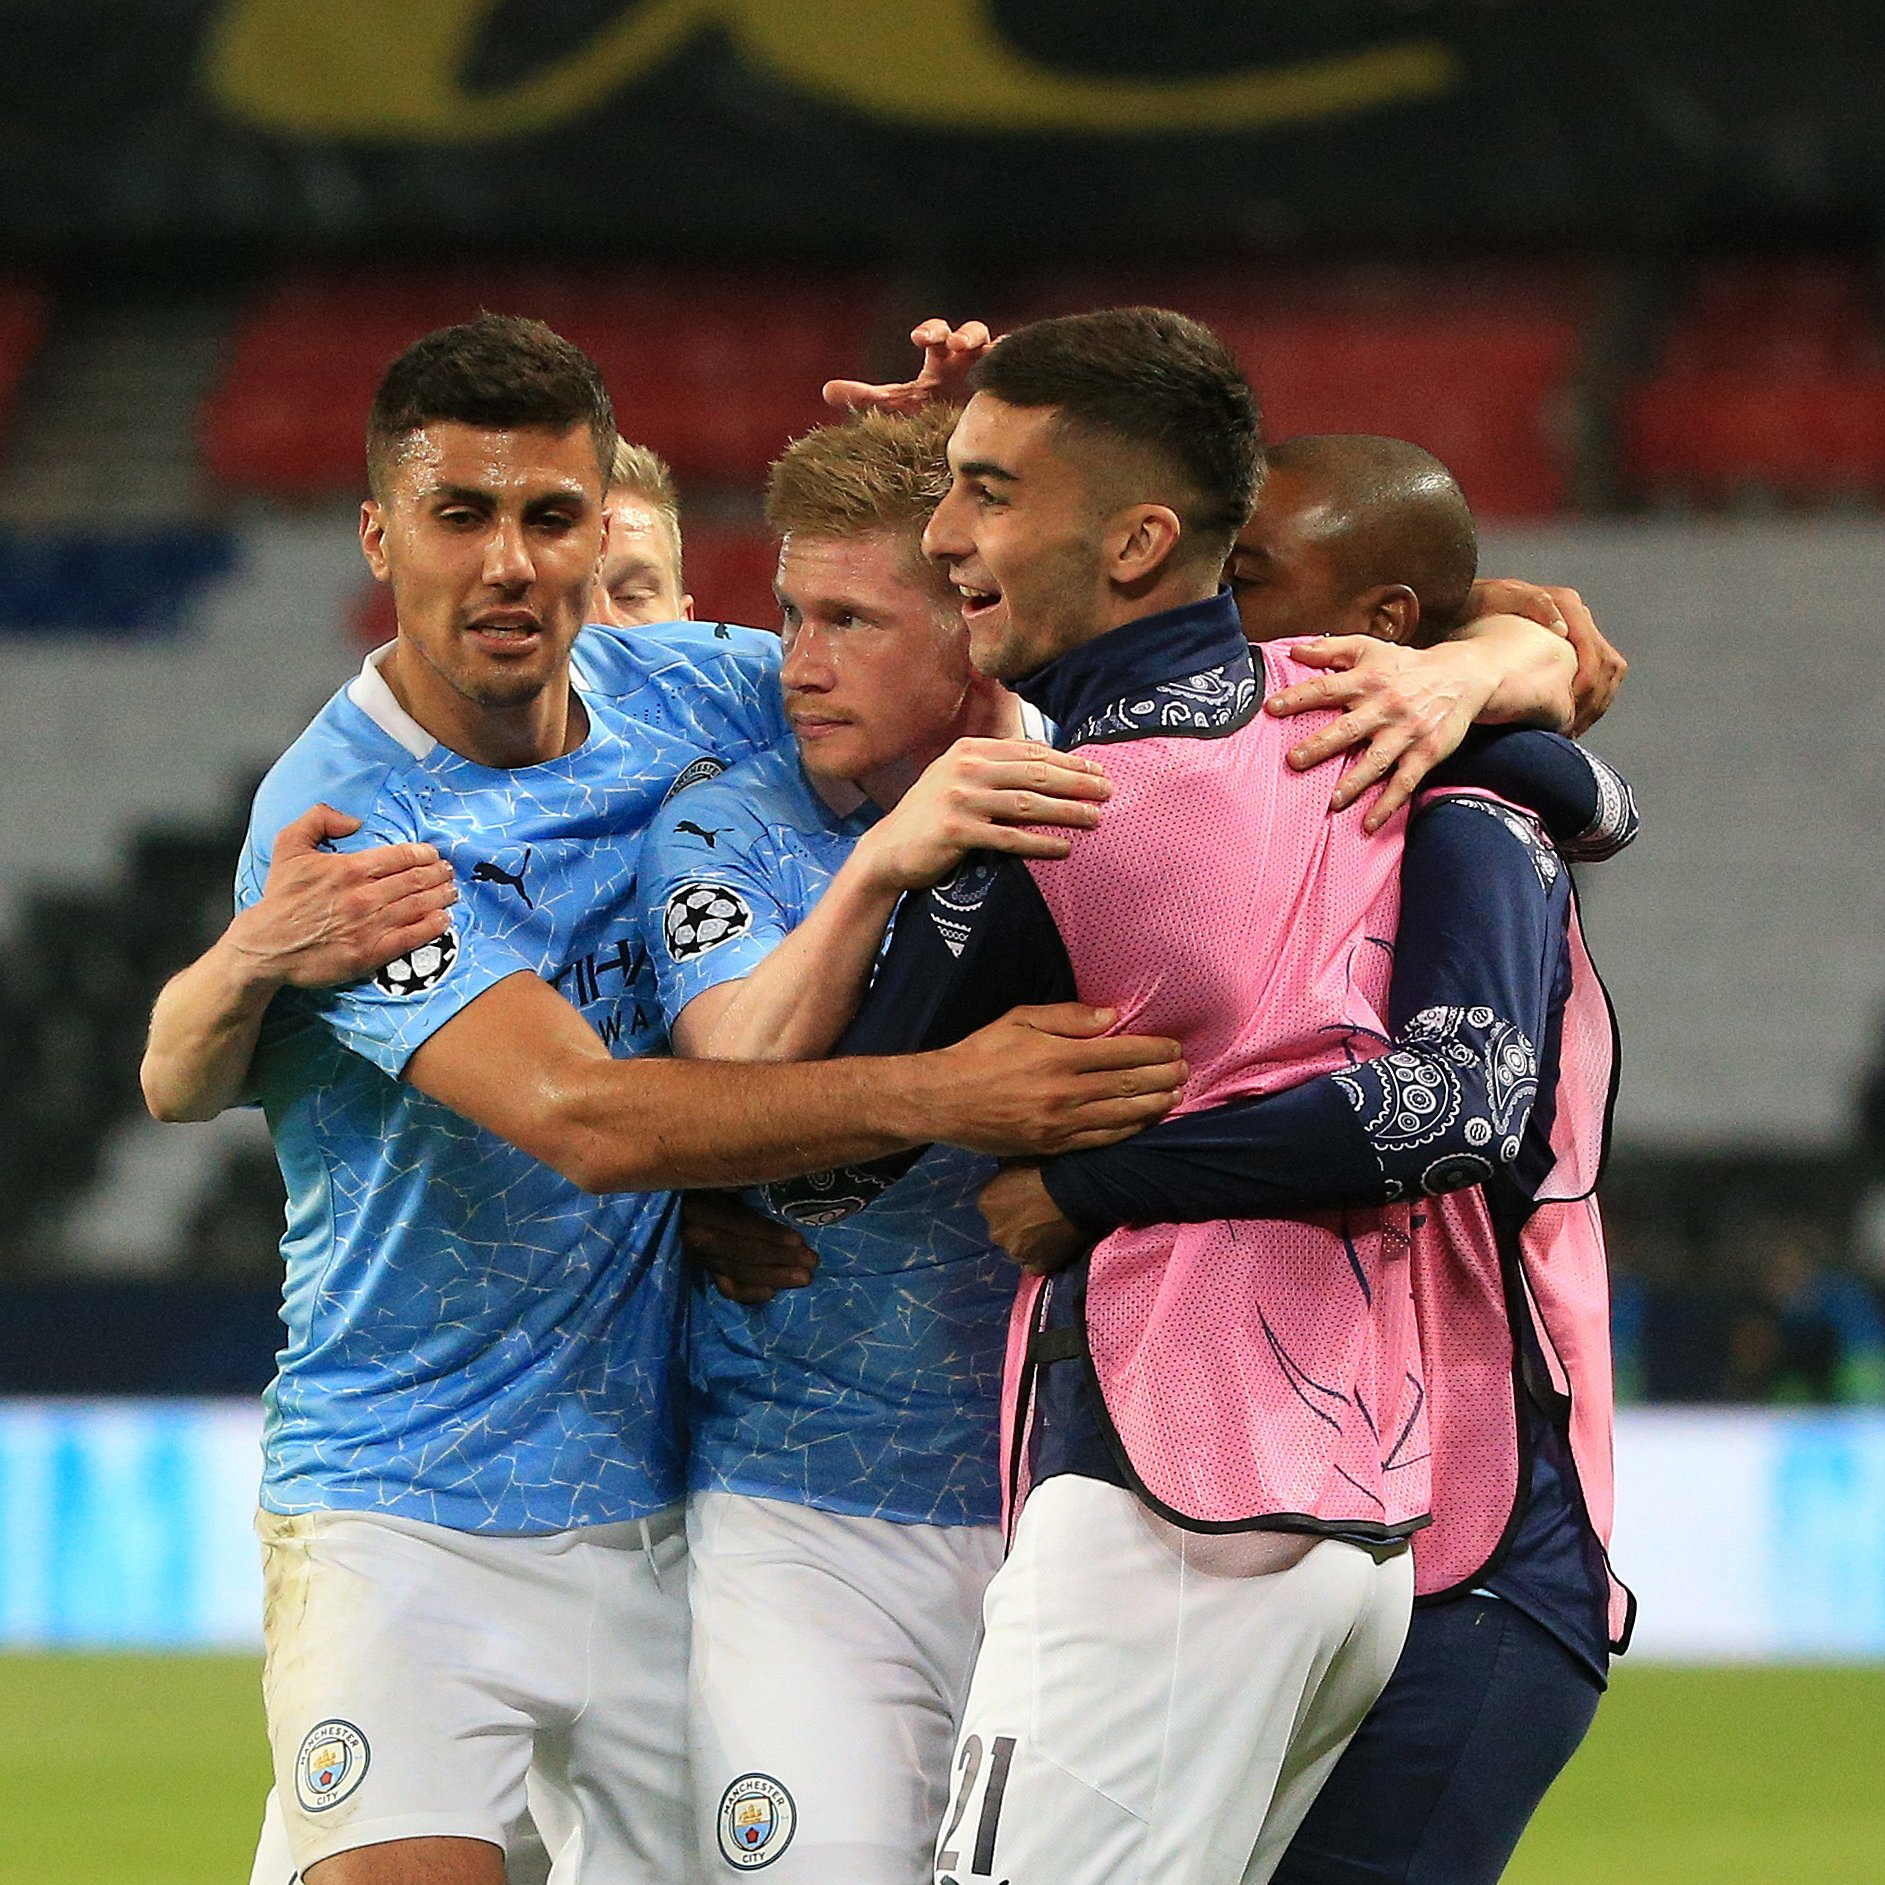 UCL: Manchester City Rally Back To Beat PSG